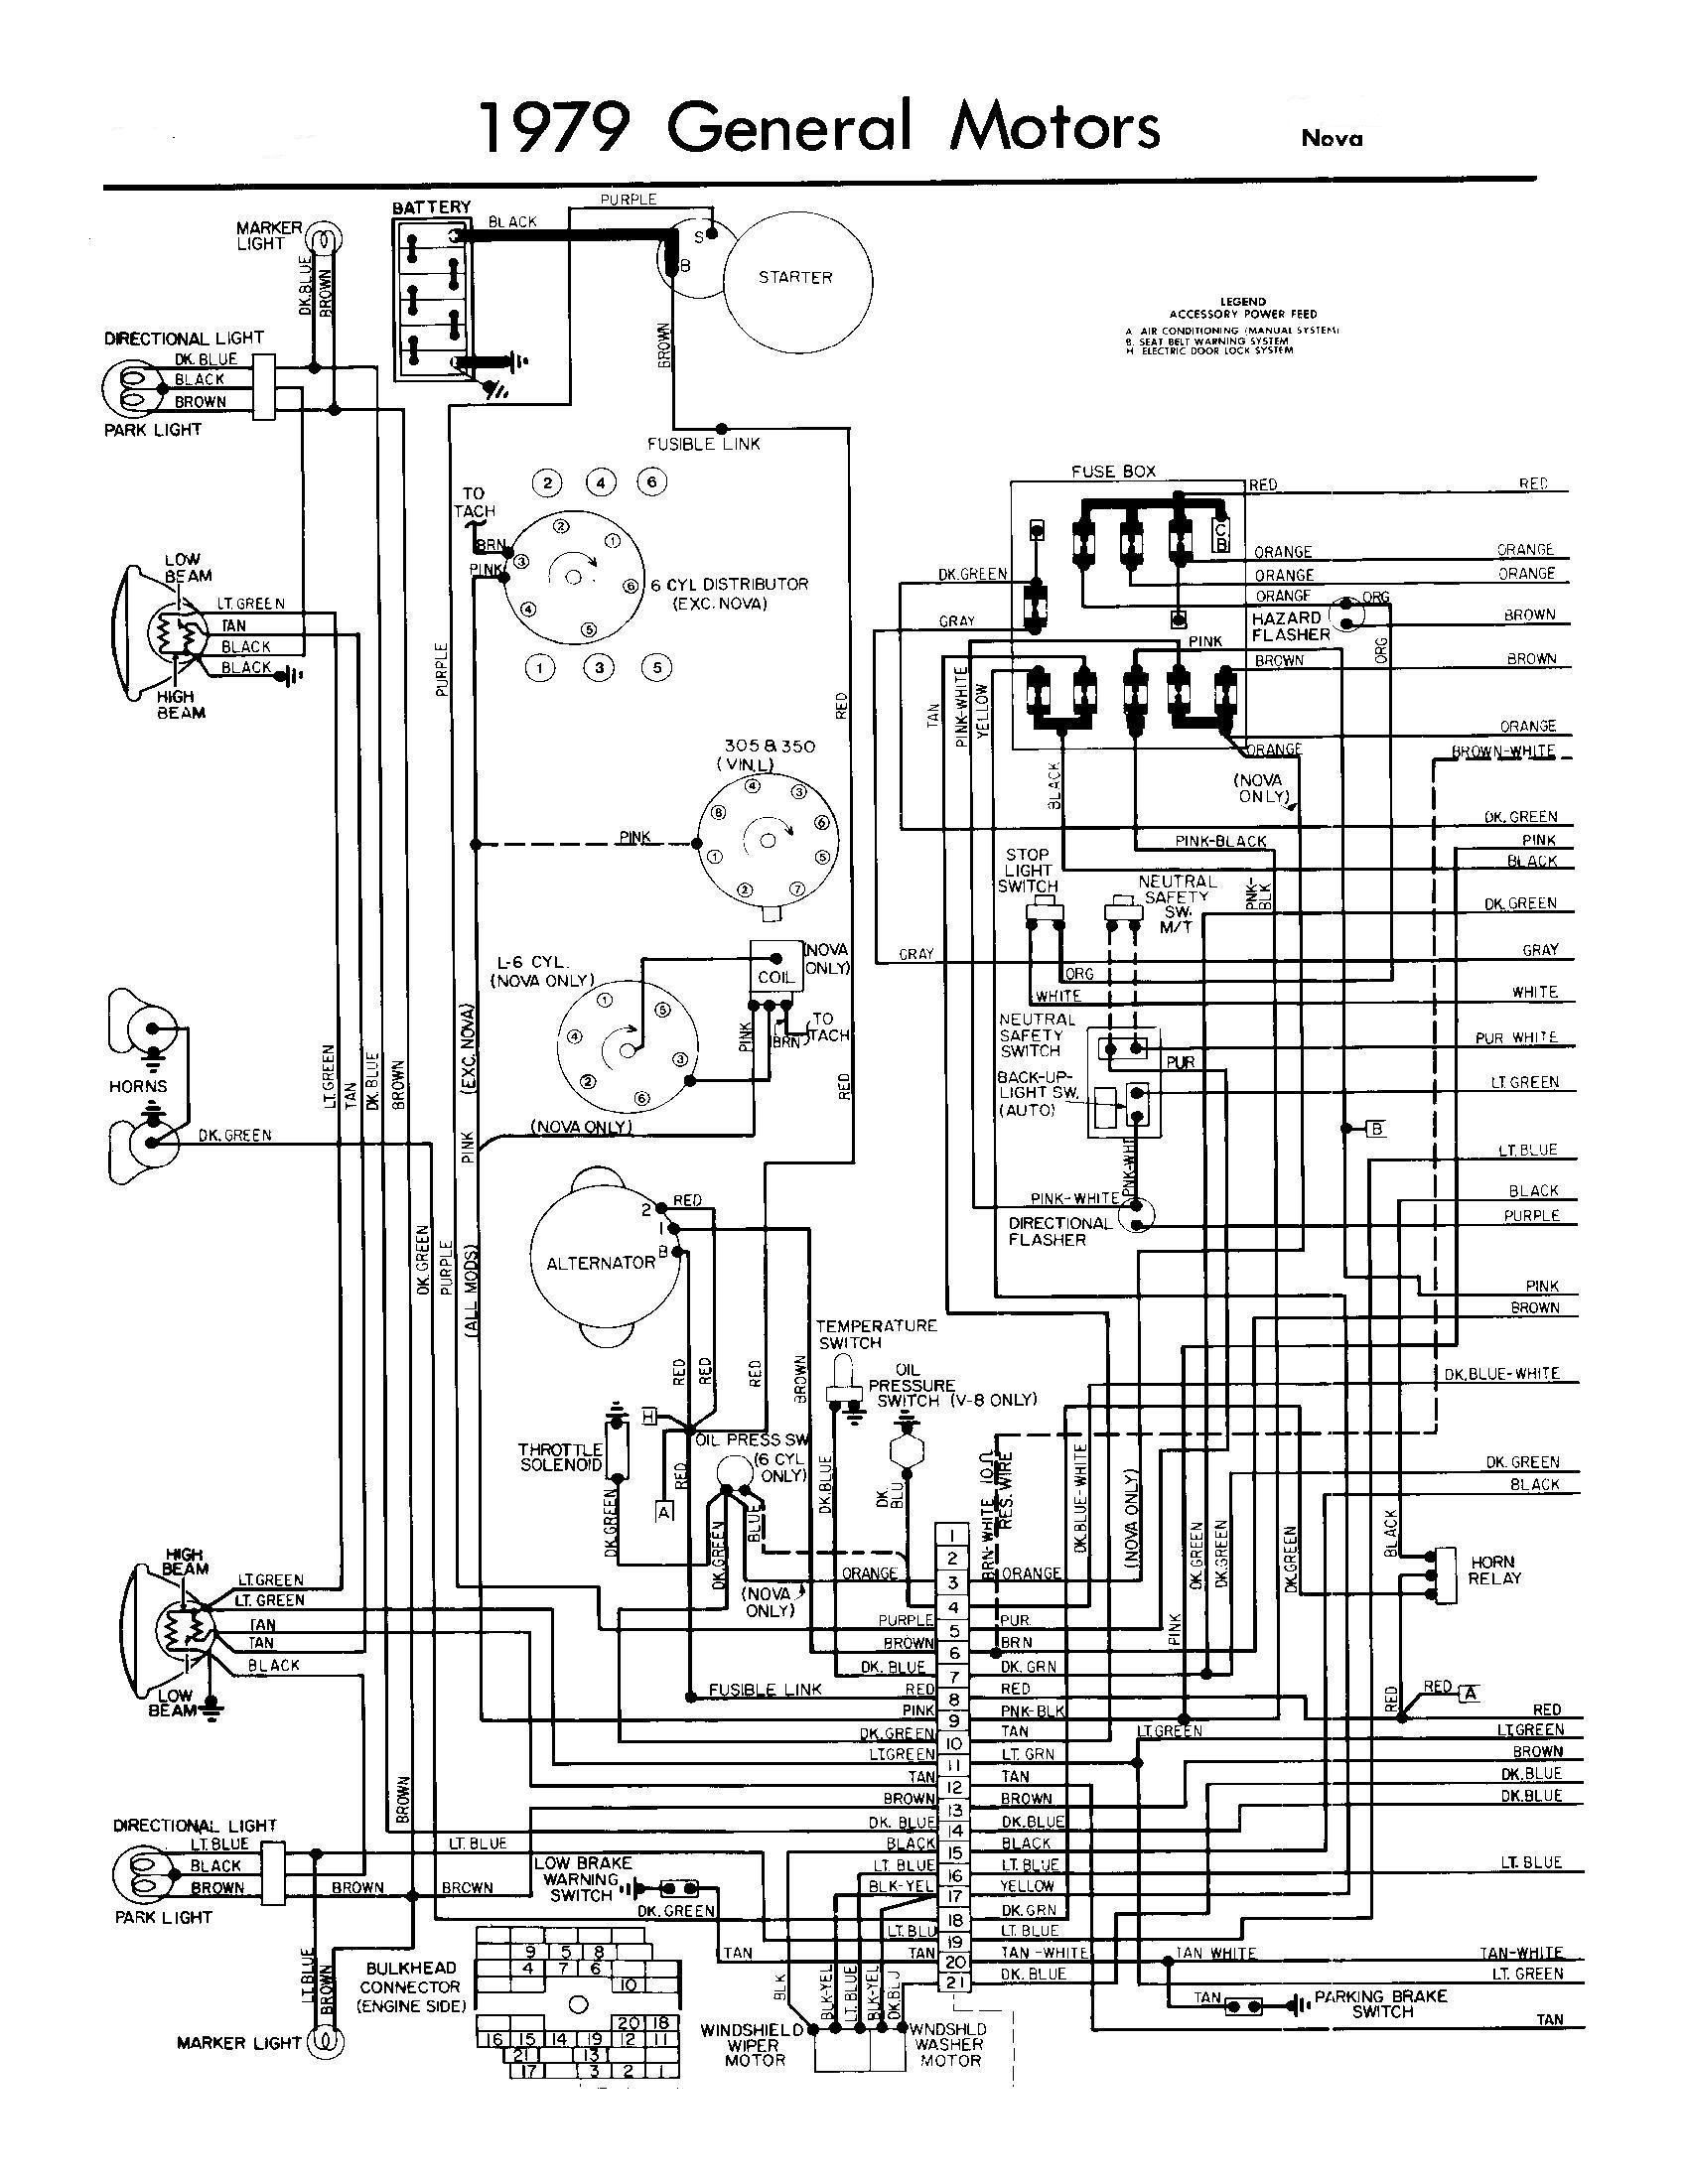 af30d80785d45bfeba8f1db47439920a all generation wiring schematics chevy nova forum custom 79' gmc 2008 Chevy Silverado Wiring Diagram at bayanpartner.co